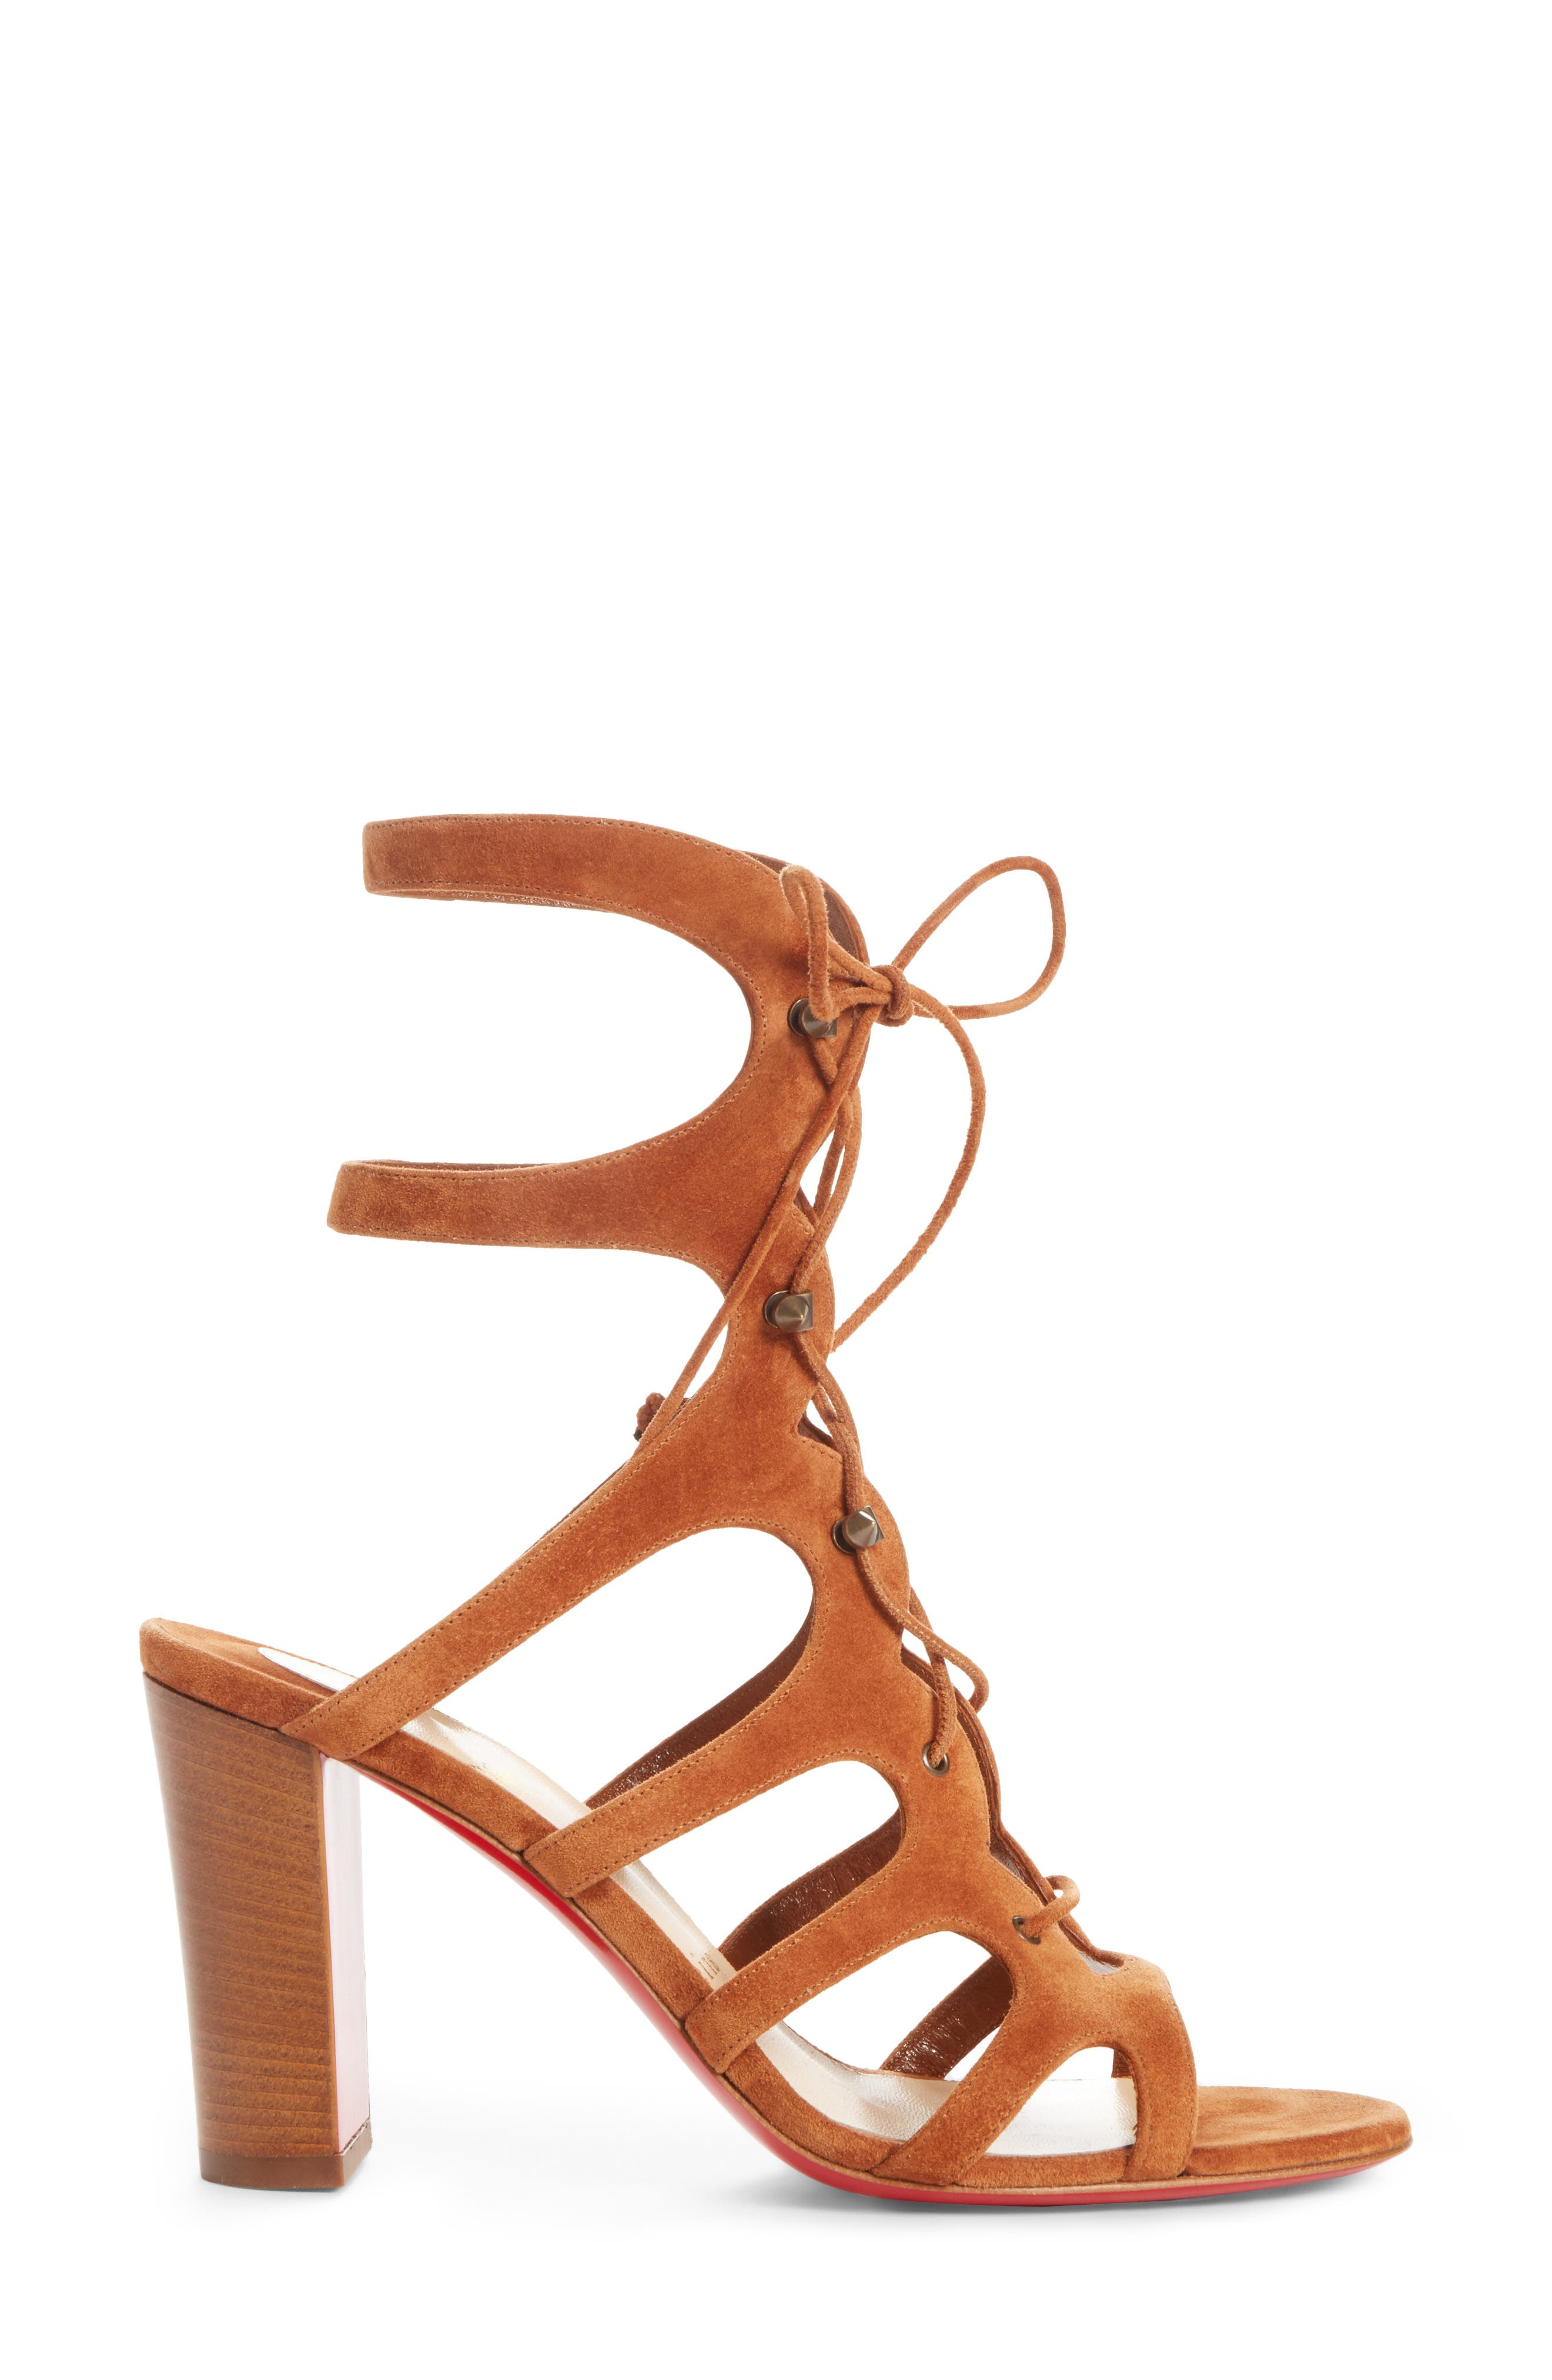 Amazoudur SD Cage Sandal,                             Alternate thumbnail 6, color,